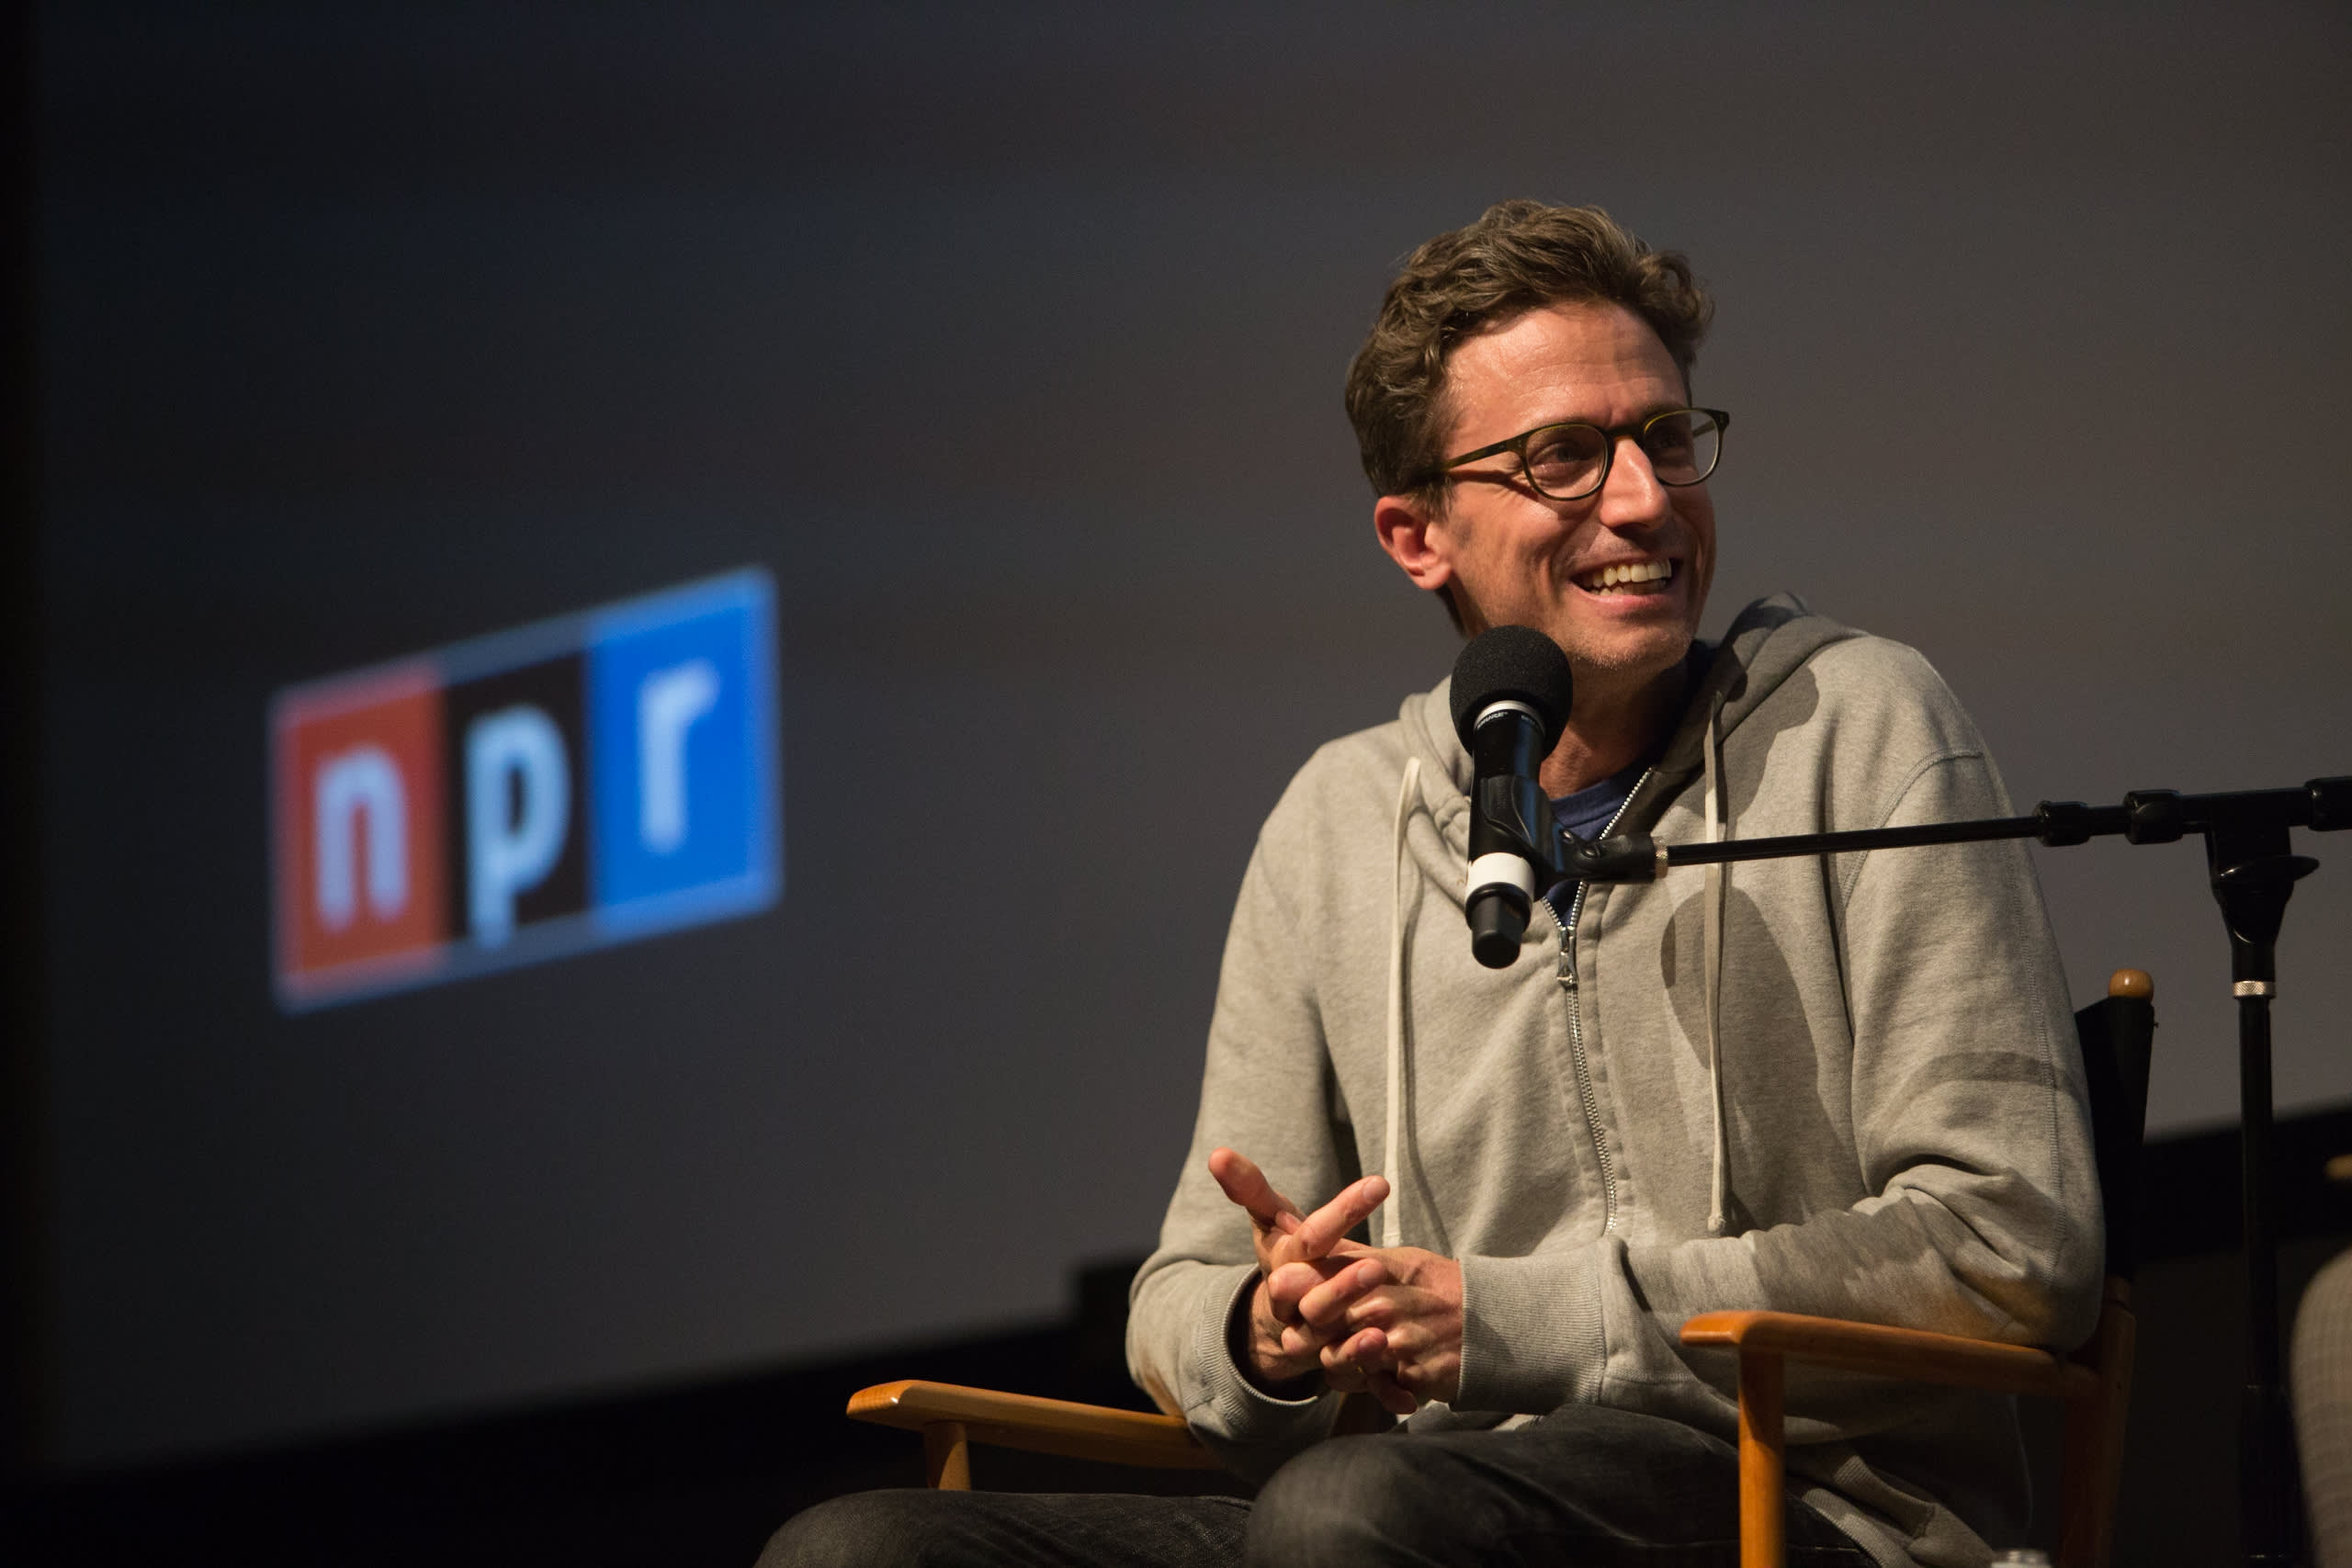 SPAC boom could finally provide an exit ramp for digital publishers like Buzzfeed and Vice Media